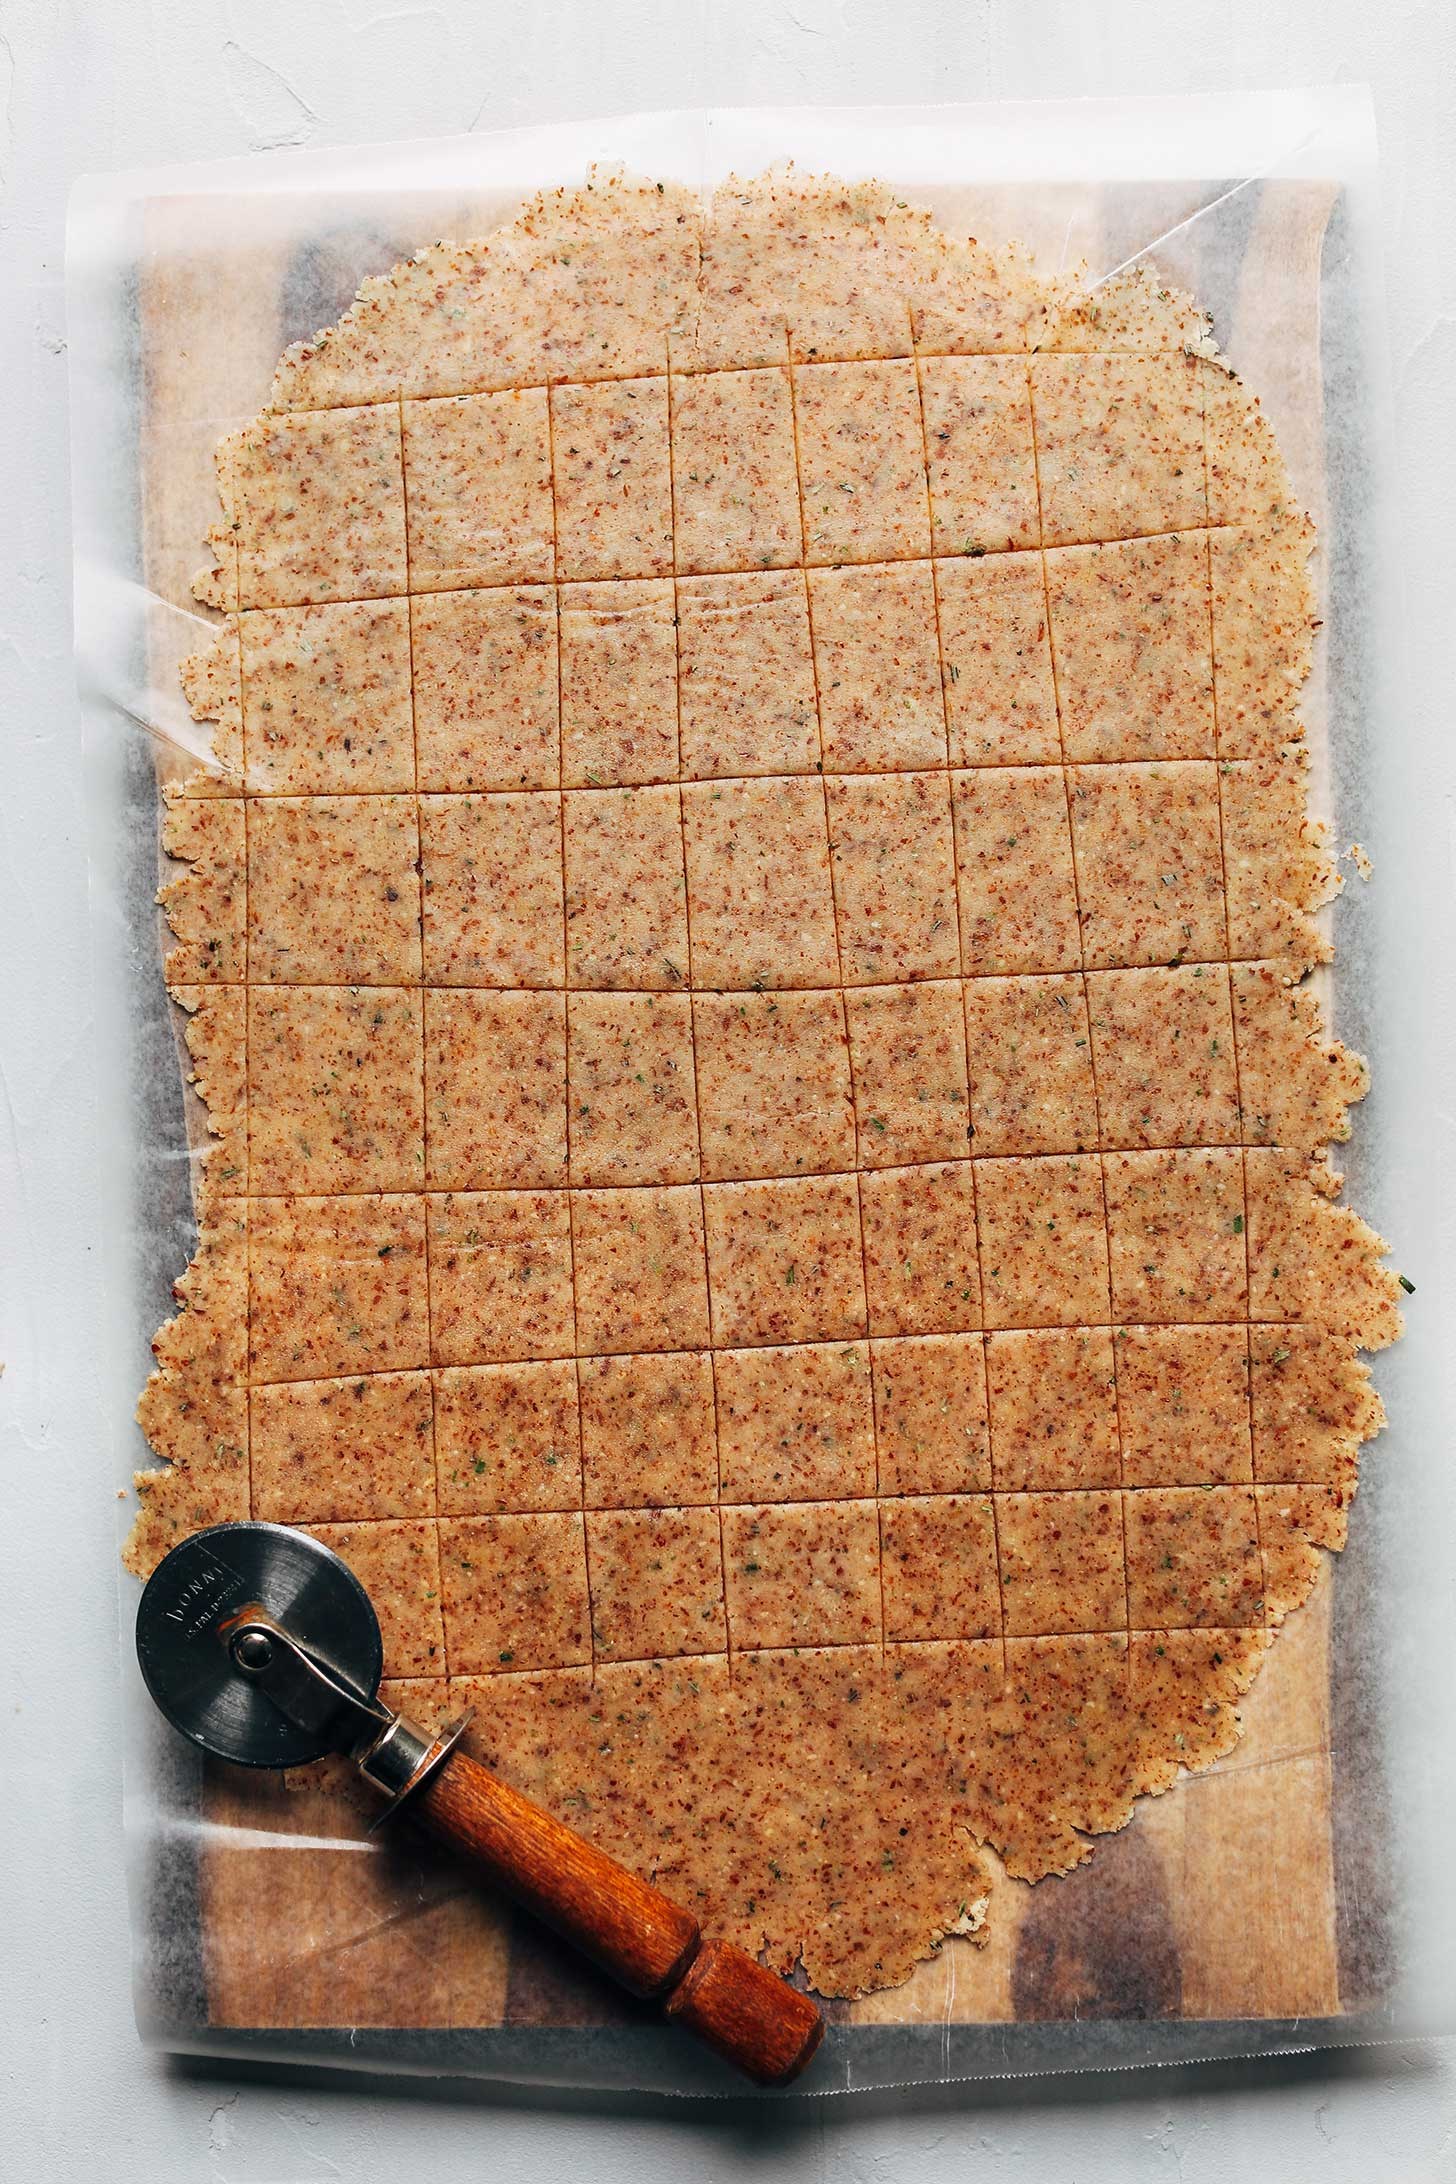 Rolled and cut dough for crispy Vegan Gluten-Free Crackers